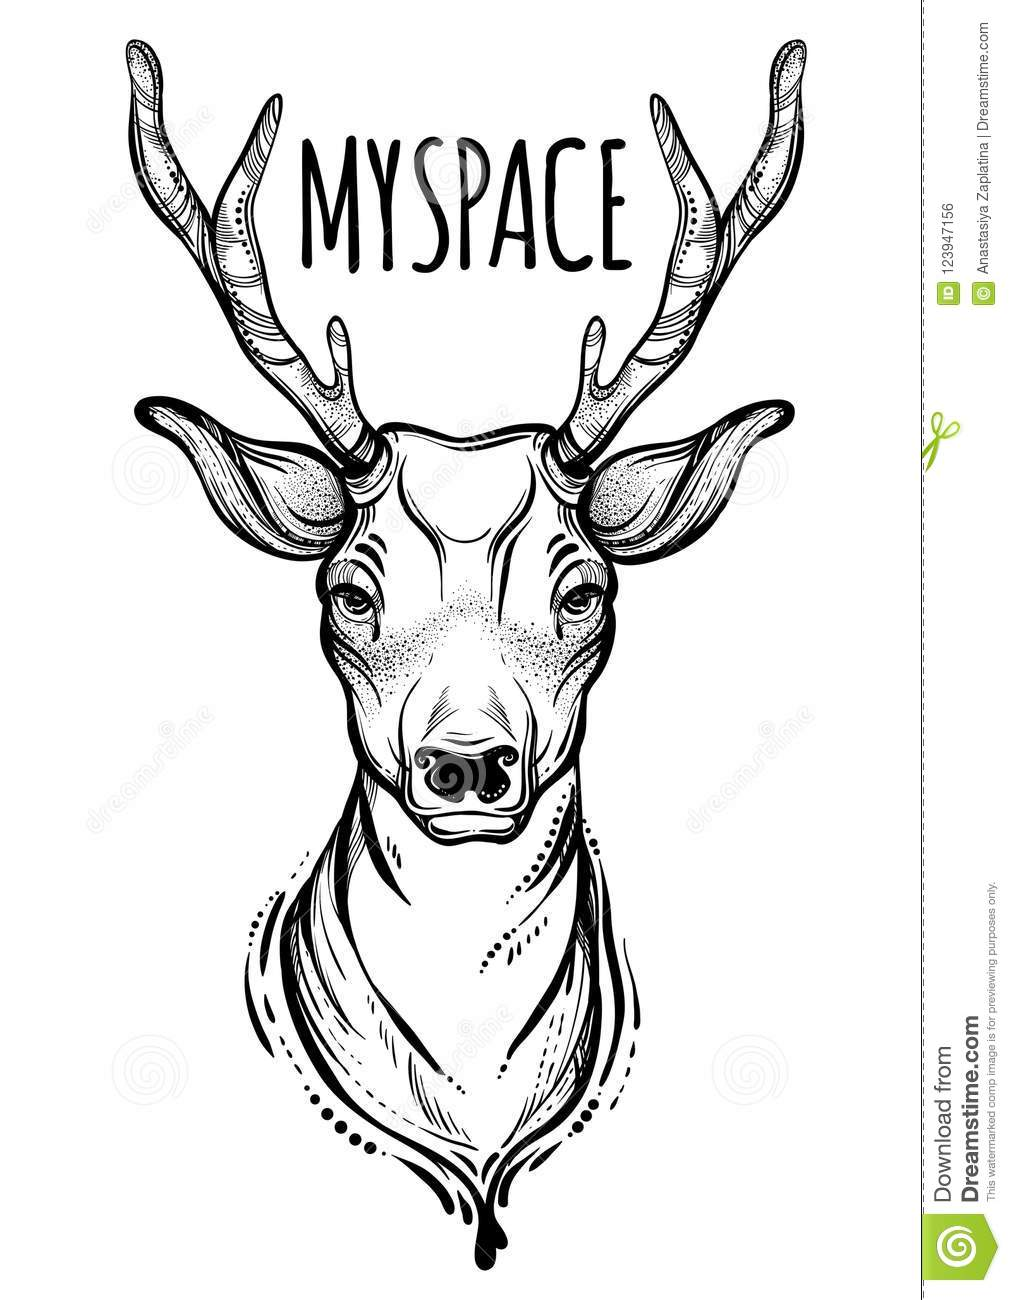 Vector Trendy Illustration With Sketched Deer My Space Concept Art